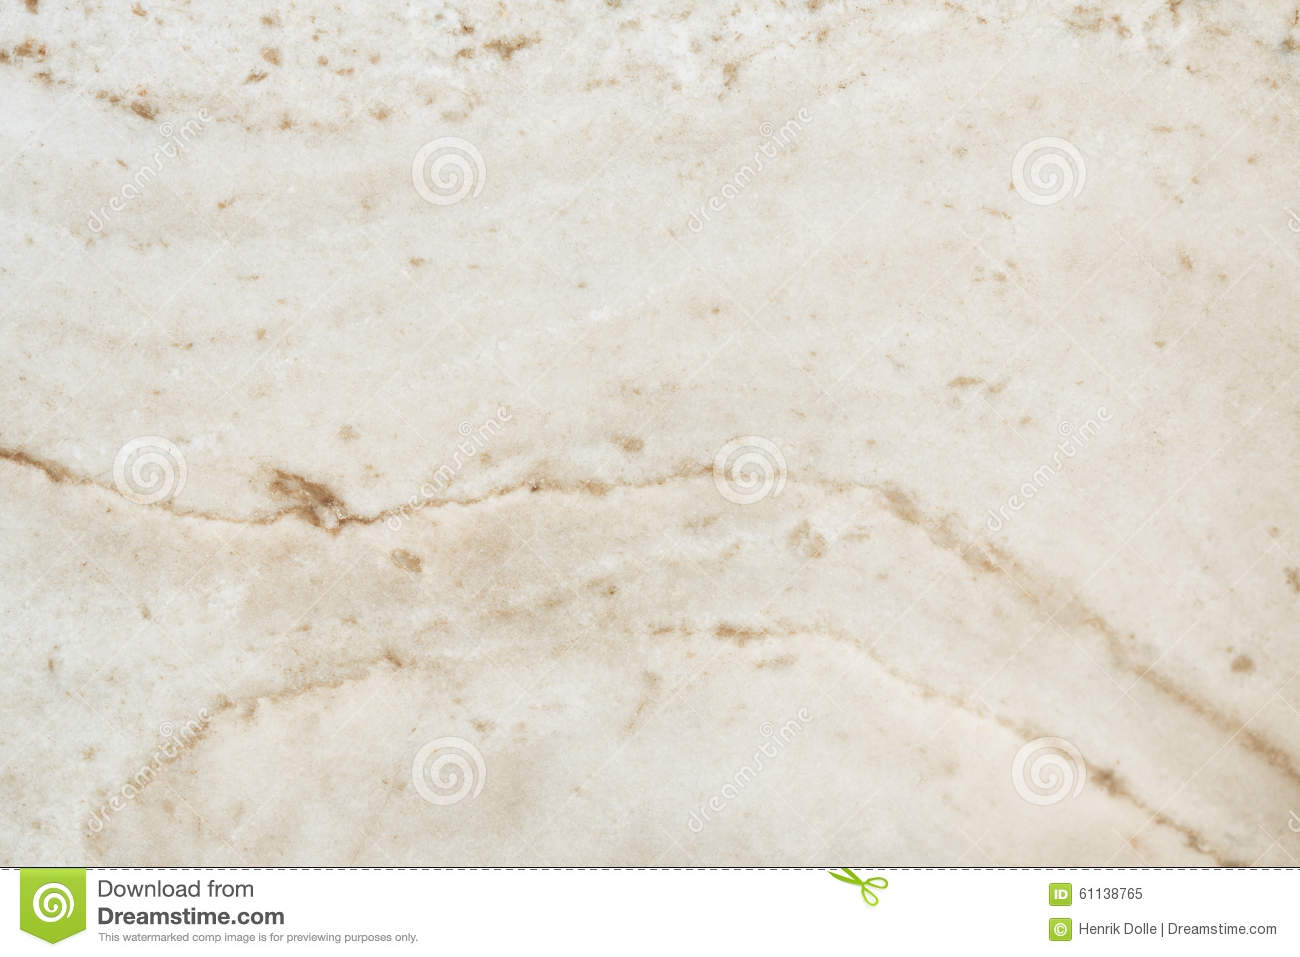 Cream Color Marble : Cream colored marble patterned texture background stock